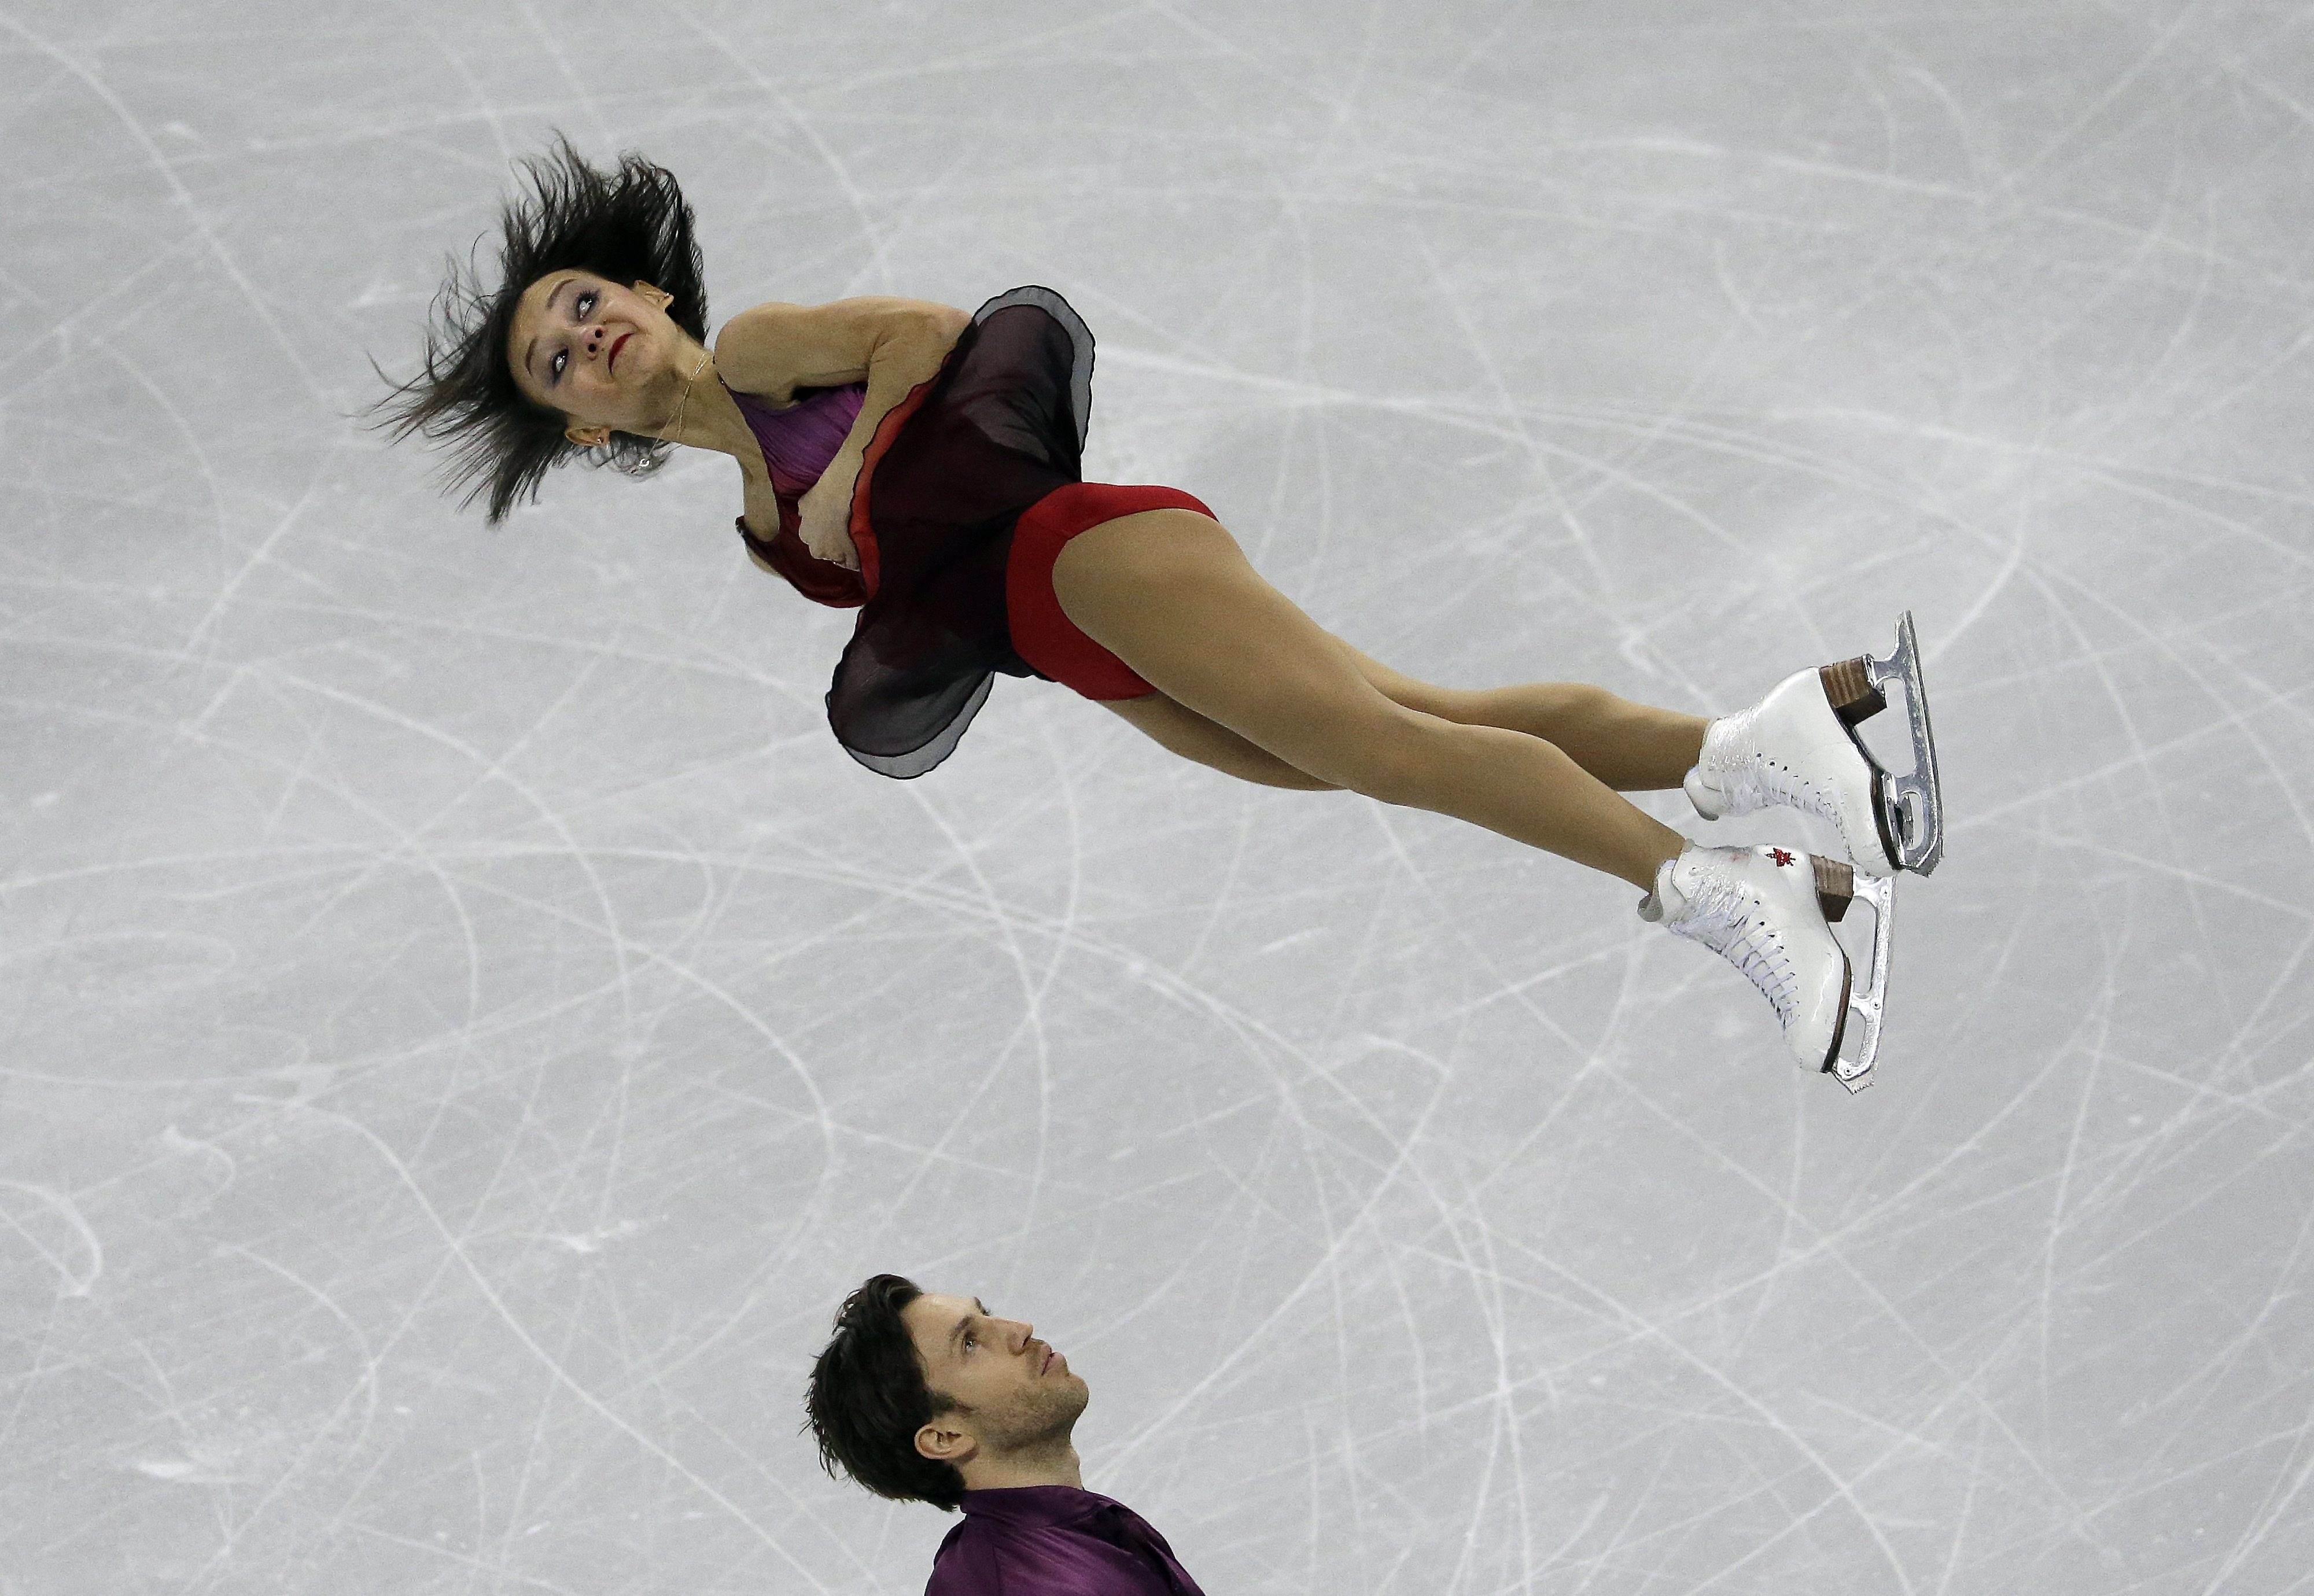 Bronze medalists Lubov Ilyushechkina and Dylan Moscovitch of Canada perform in the Pairs Free Skating at the ISU Four Continents Figure Skating Championships in Gangneung, South Korea, Saturday, Feb. 18, 2017. (AP Photo/Ahn Young-joon)